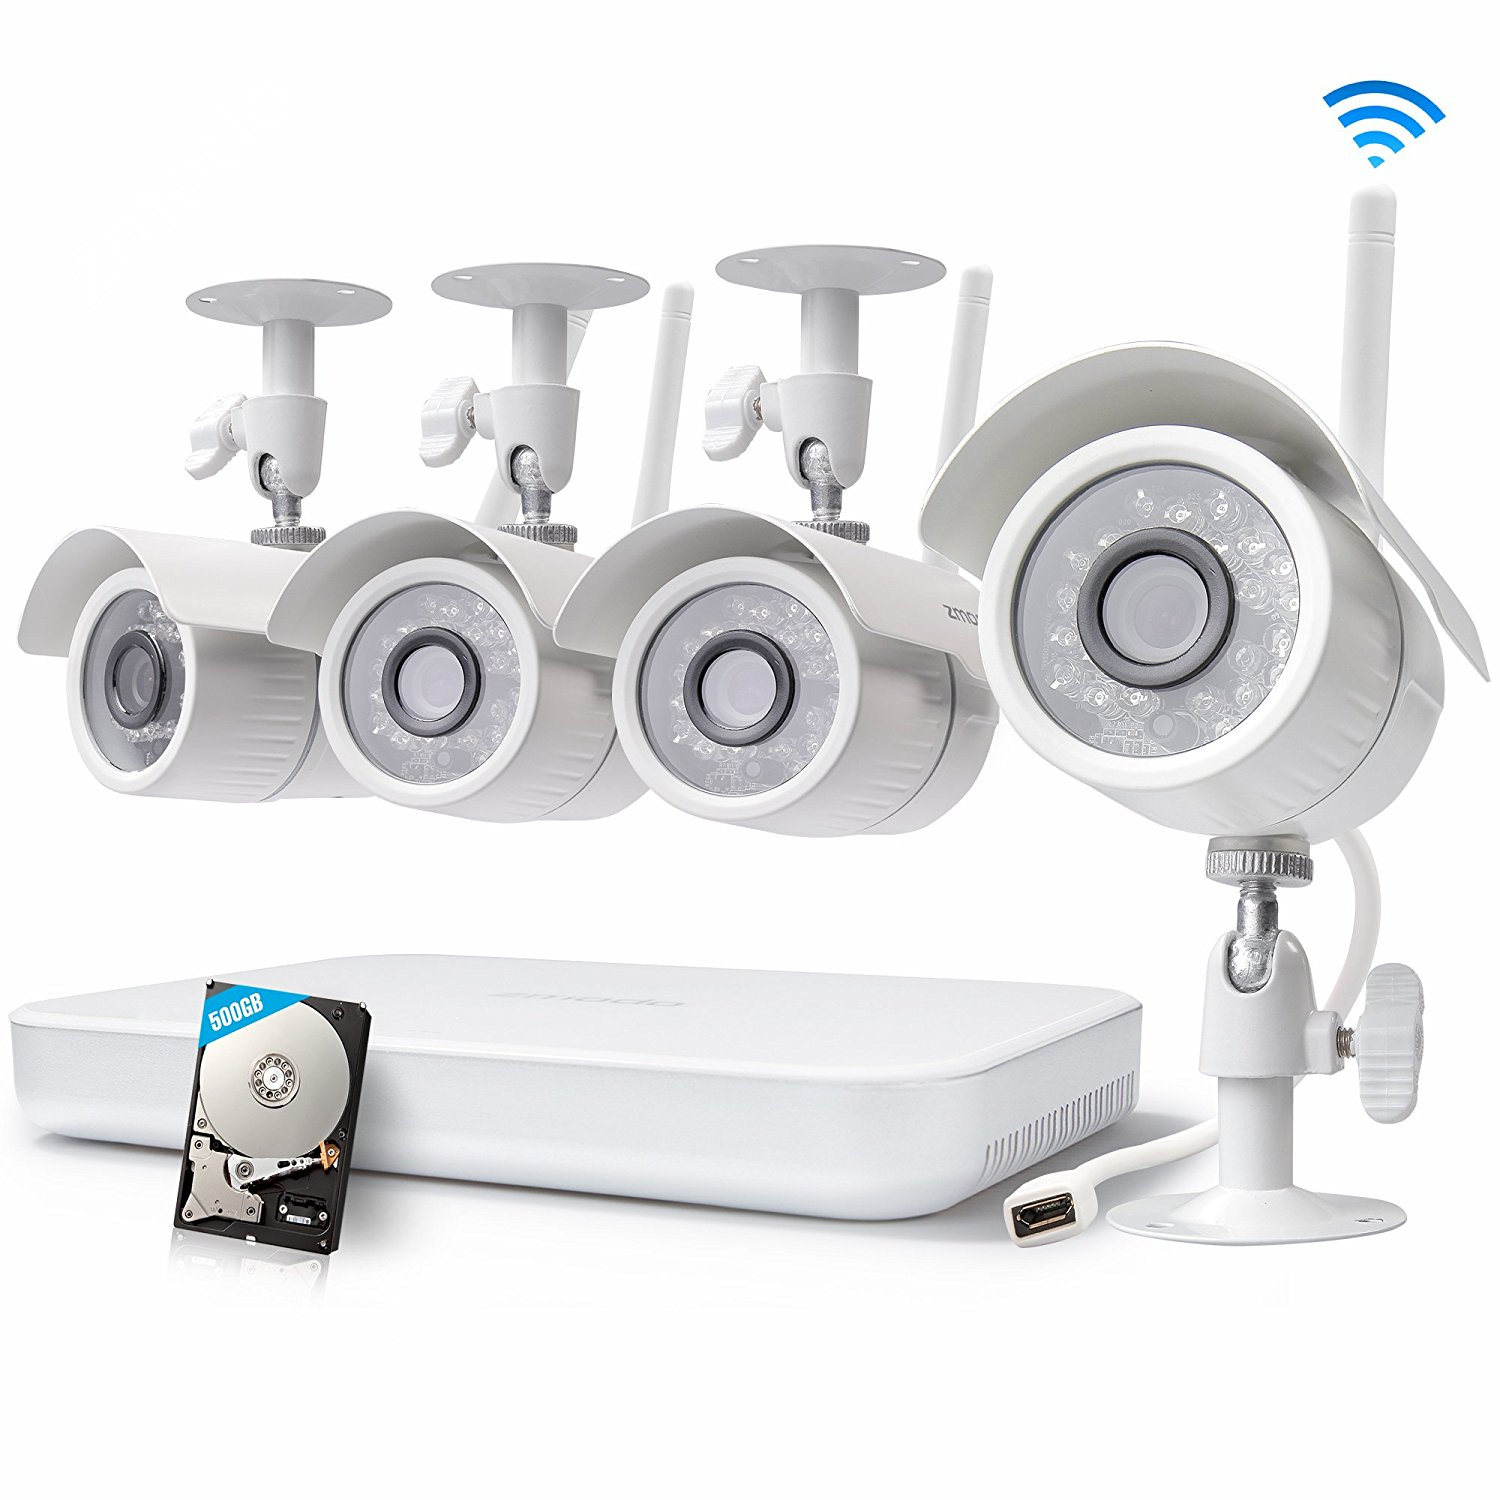 500 GB 8 Channel Indoor and Outdoor High Definition Wireless Security  Camera System